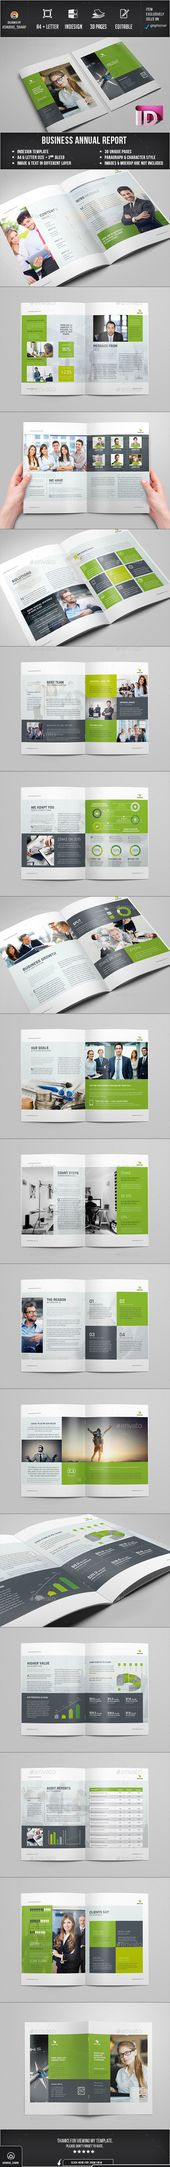 Annual Report InDesign Template by Creative Template on - annual report templates free download